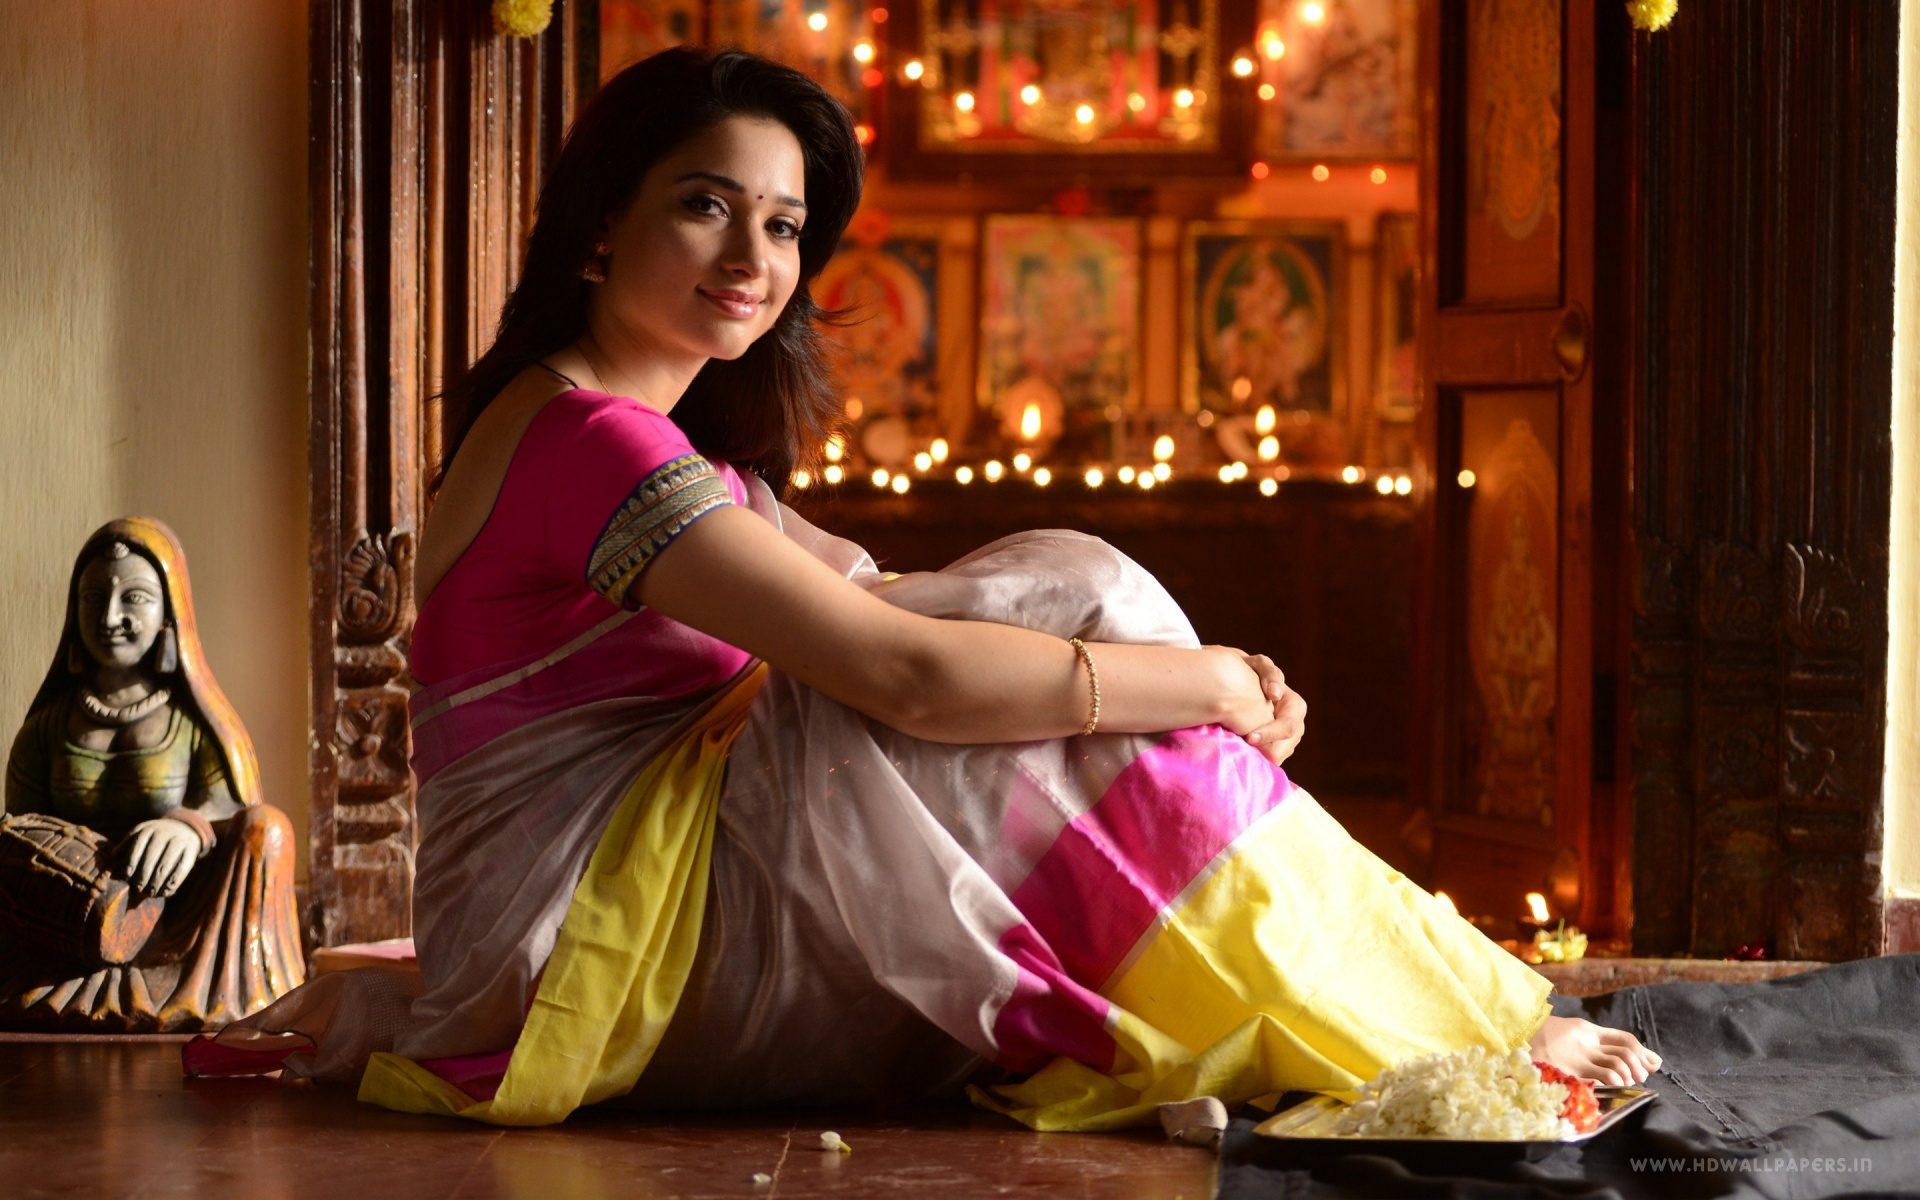 Tamanna Bhatia Wallpapers In Jpg Format For Free Download